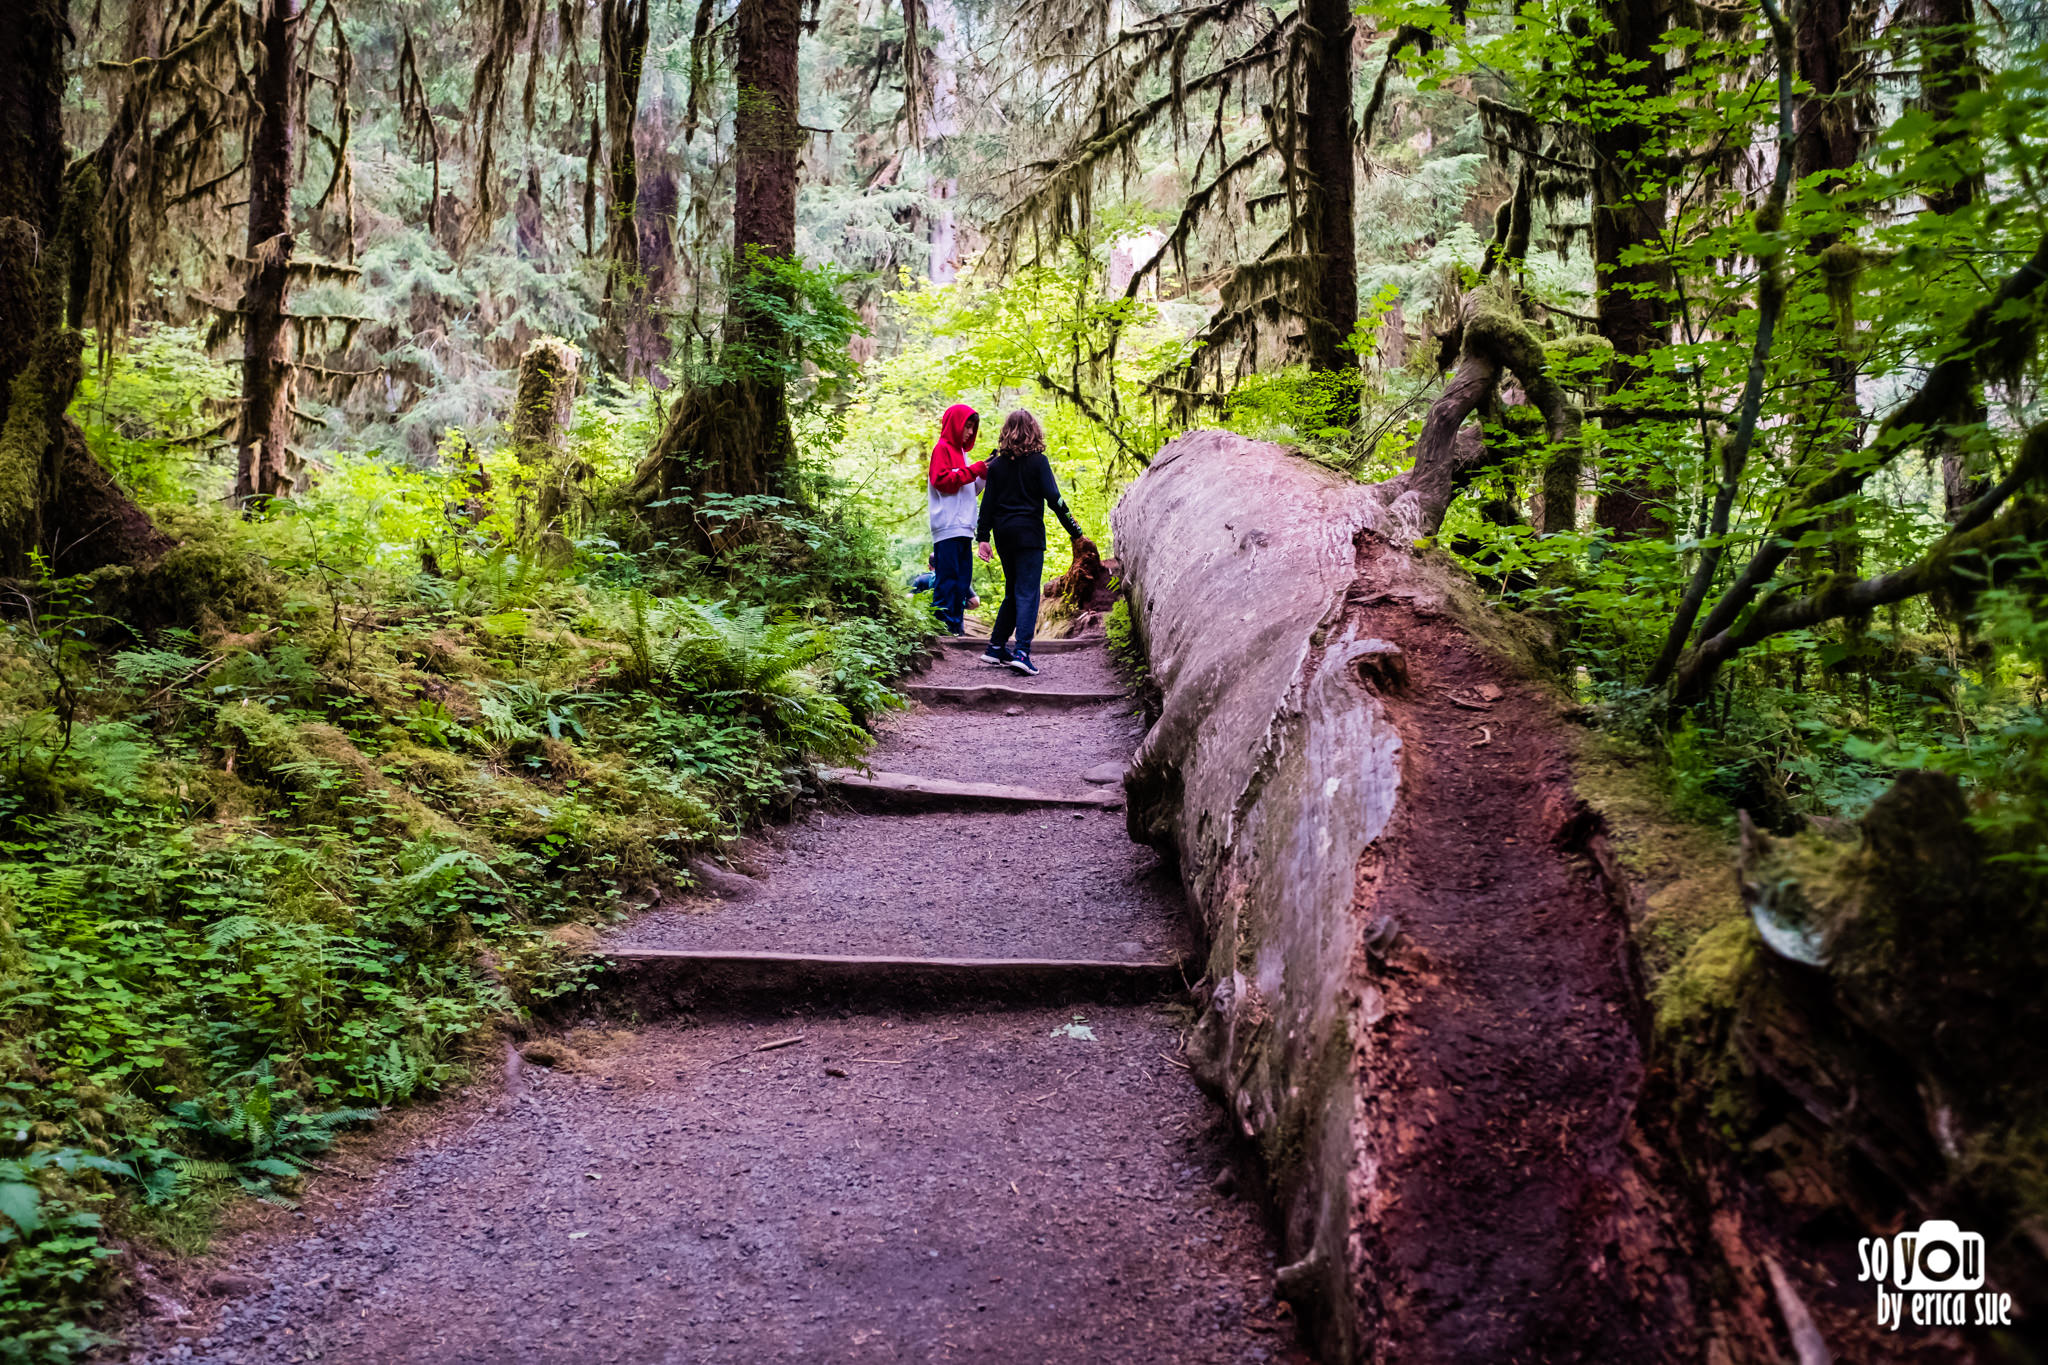 so-you-by-erica-sue-travels-olympic-national-park-road-trip-itinerary-3600.JPG